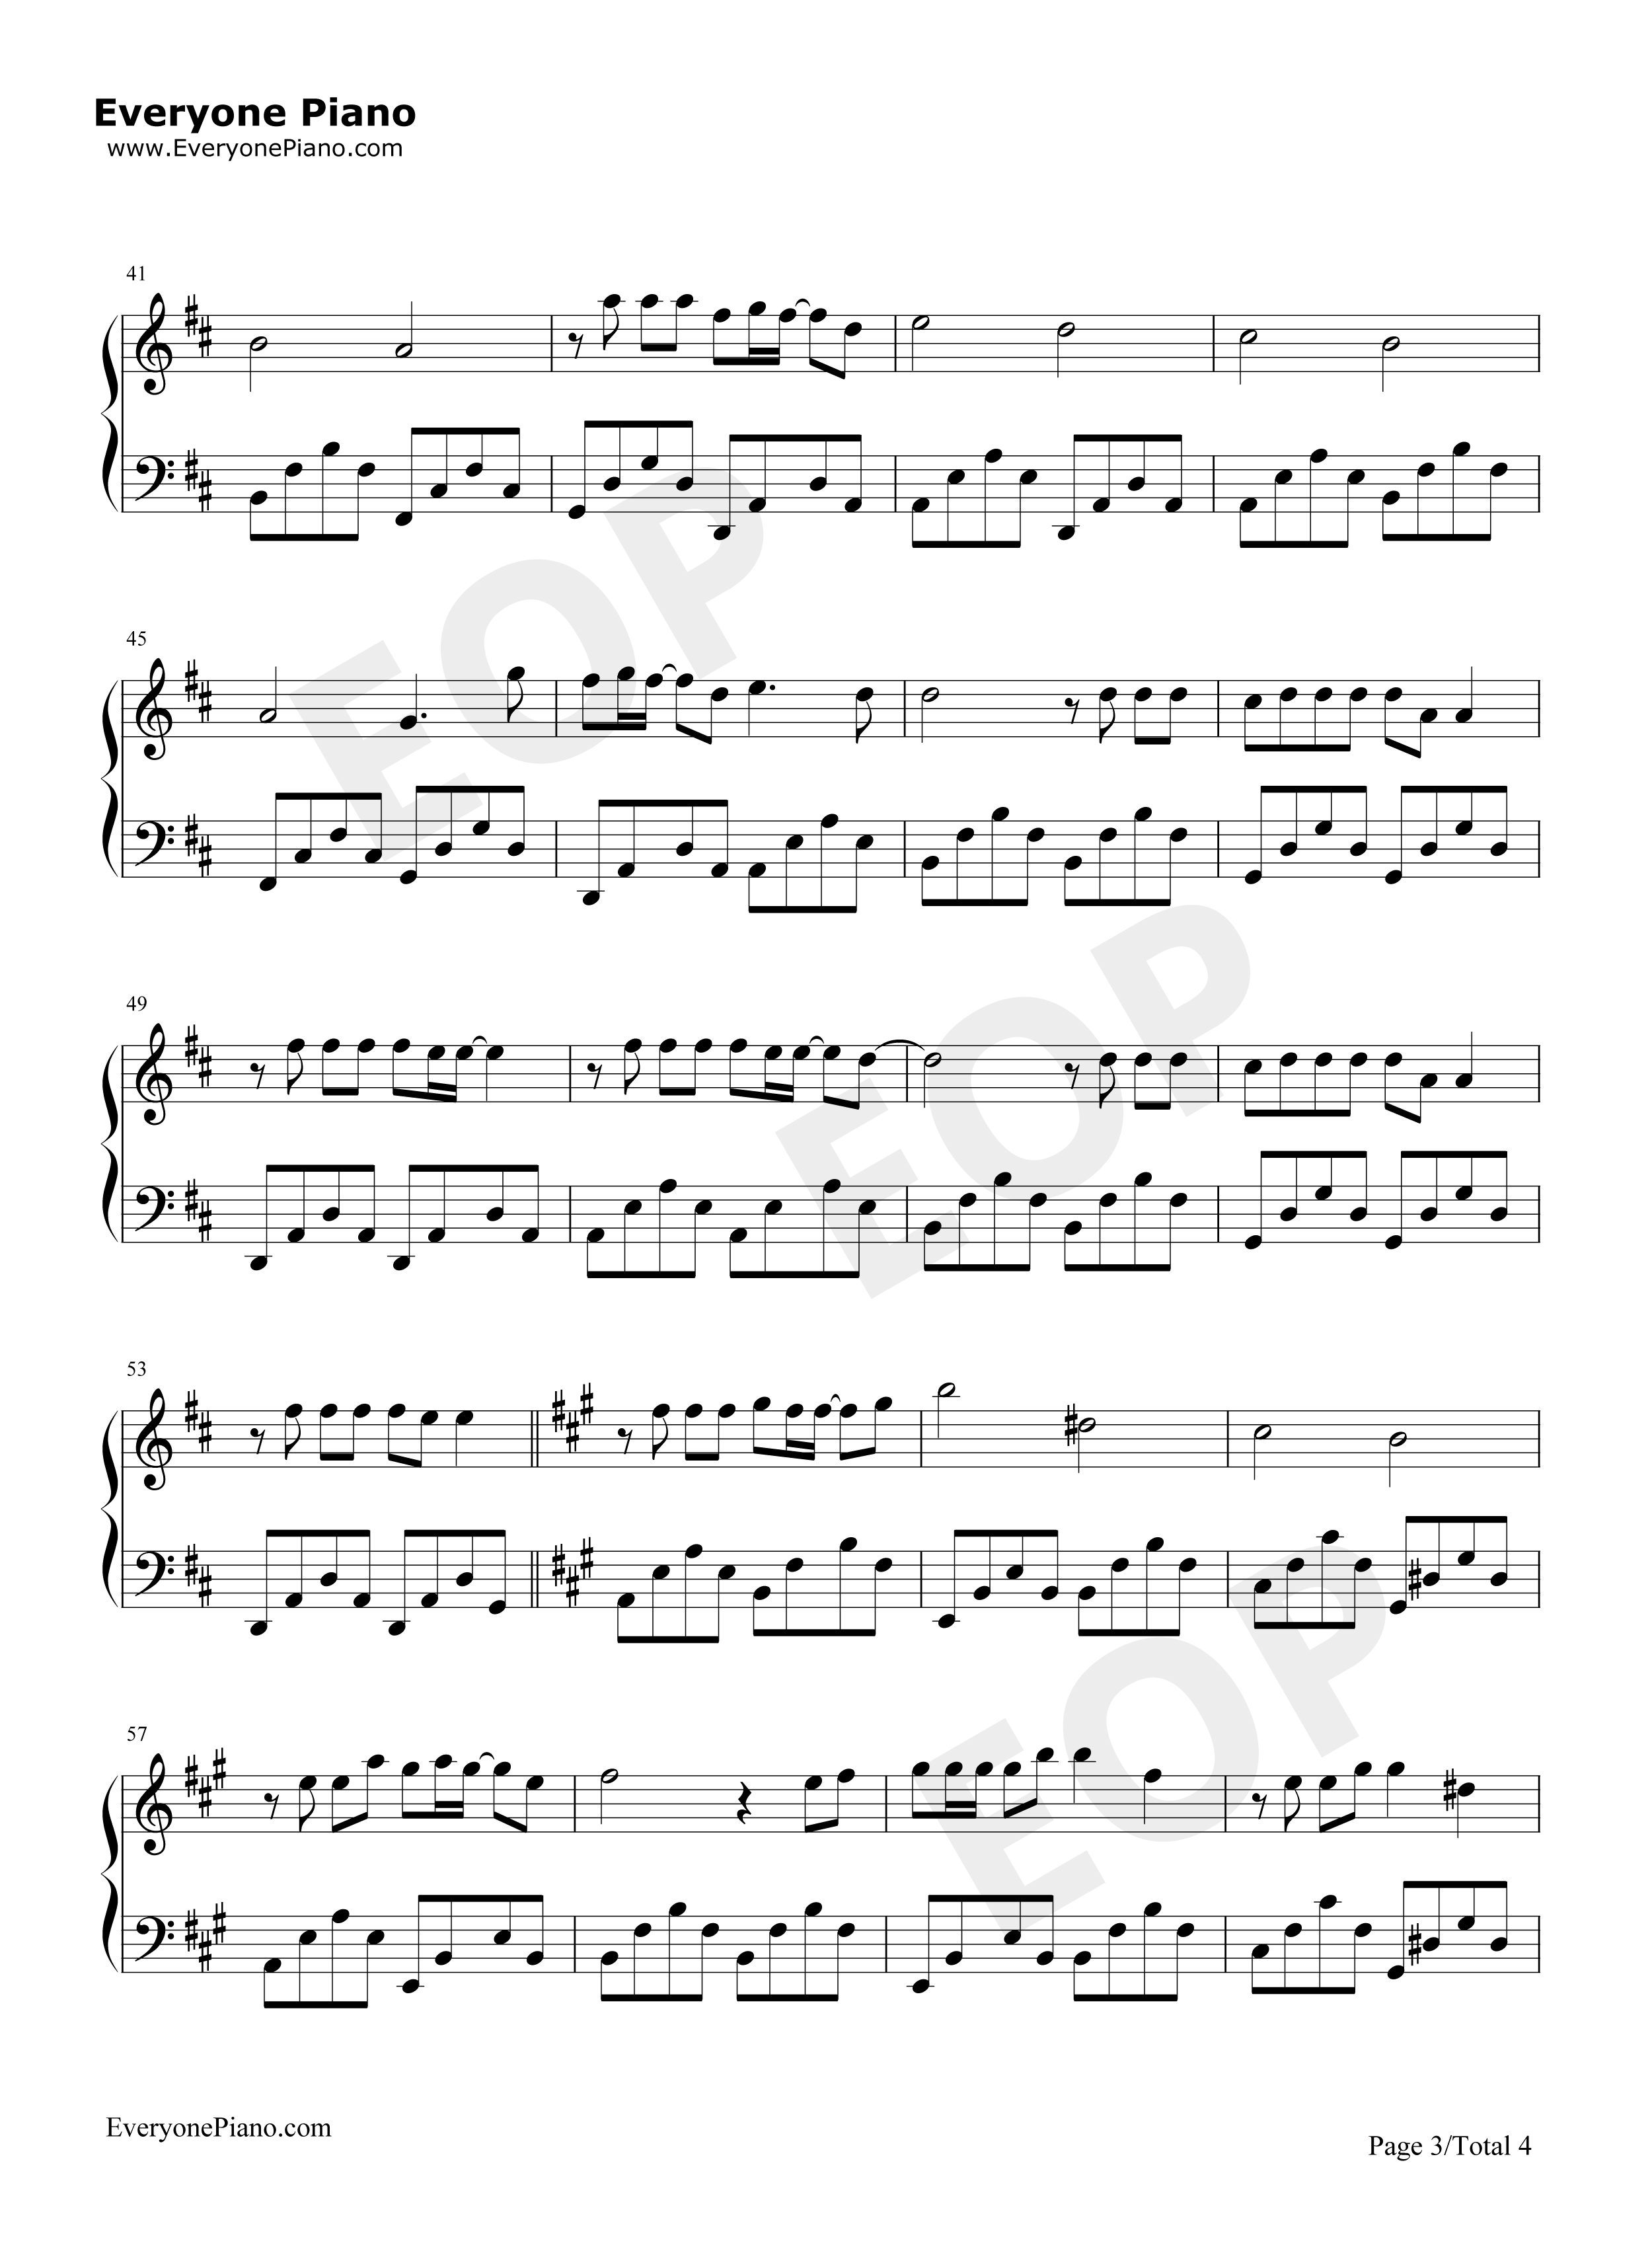 Beautiful in white westlife stave preview 3 free piano sheet listen now print sheet beautiful in white westlife stave preview 3 hexwebz Gallery